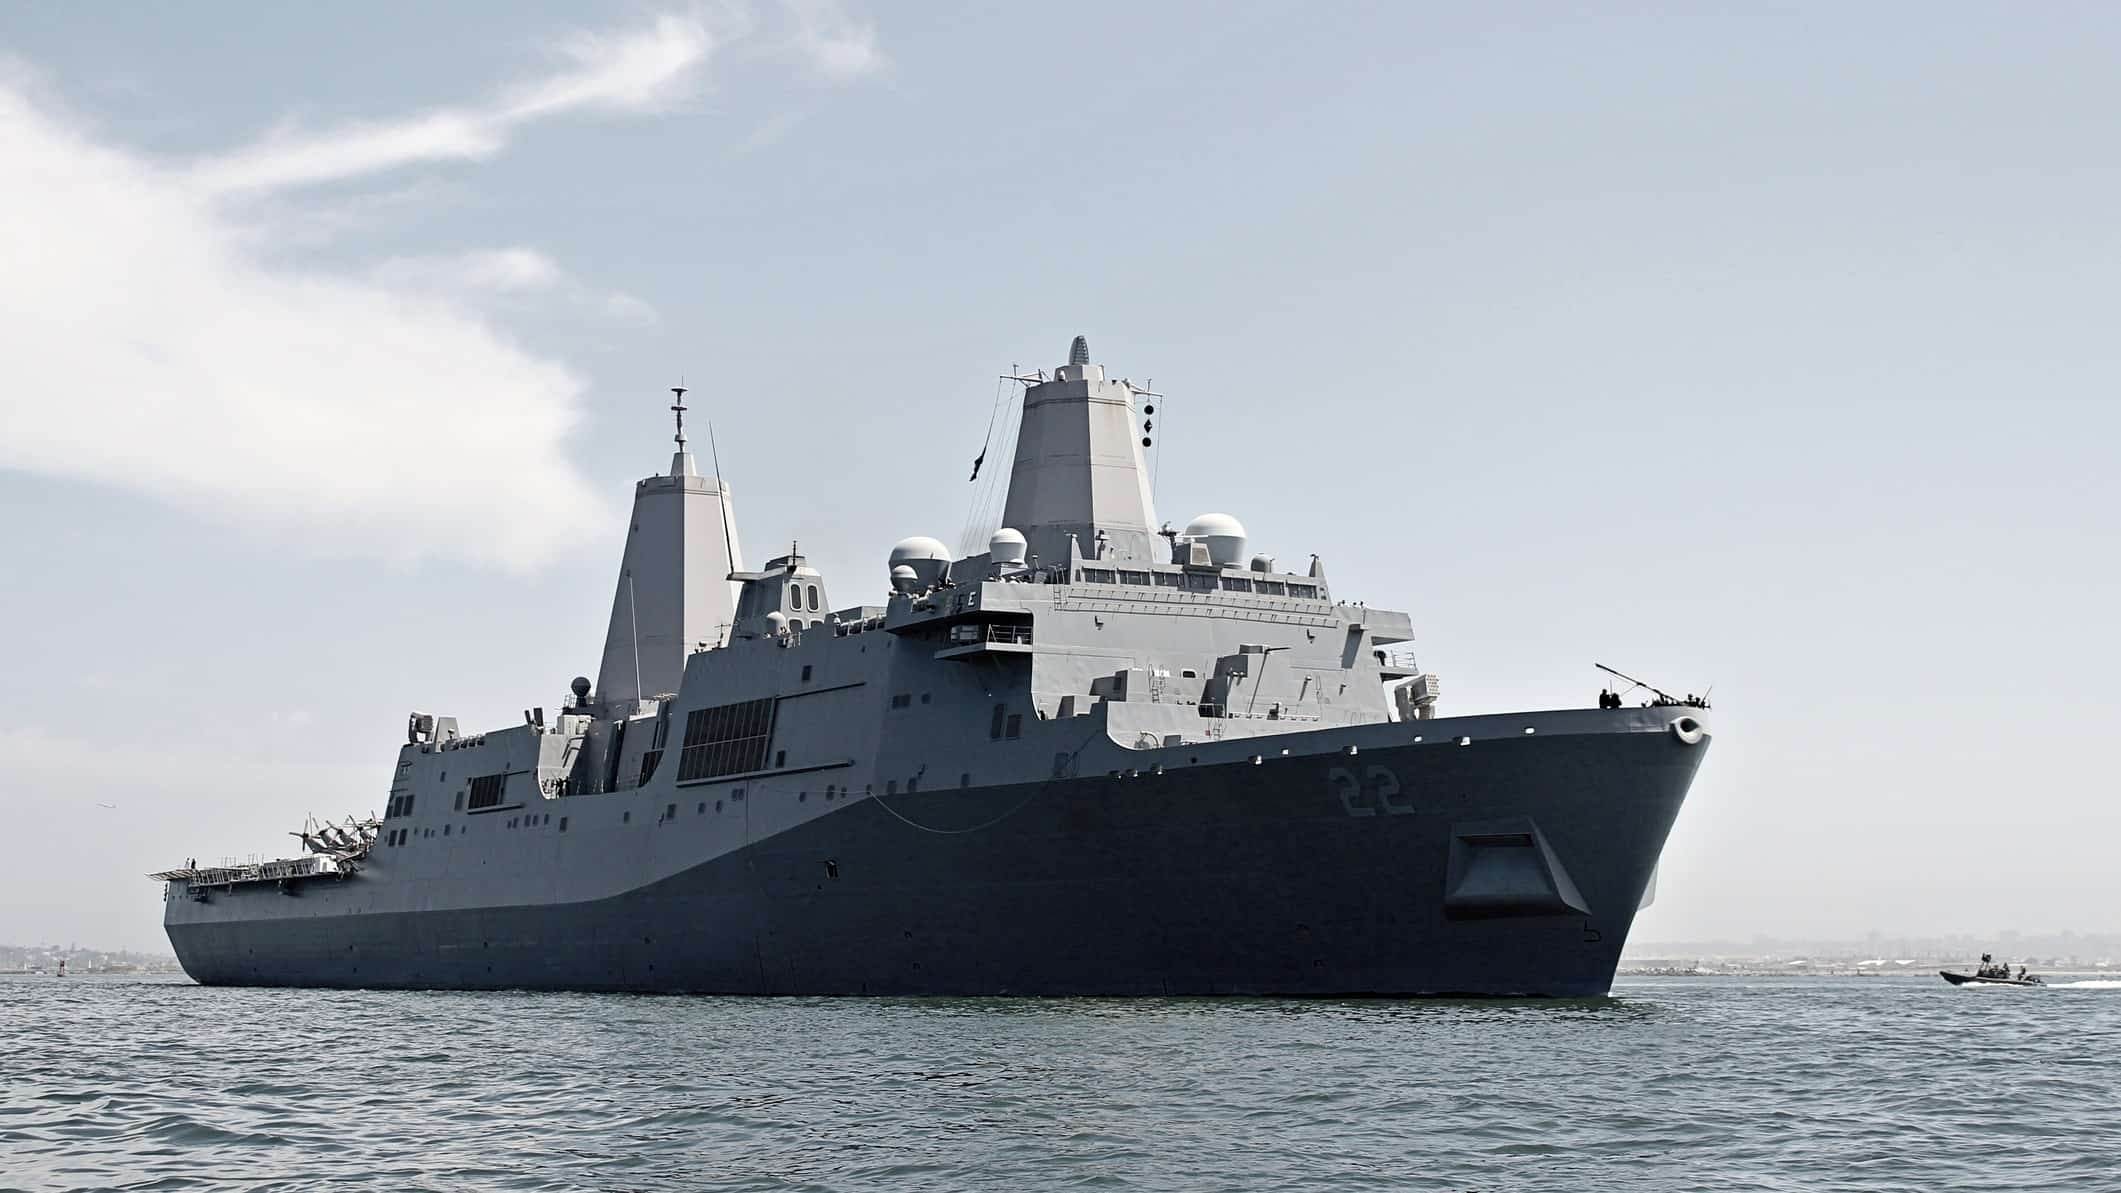 navy ship on the water representing austal share price